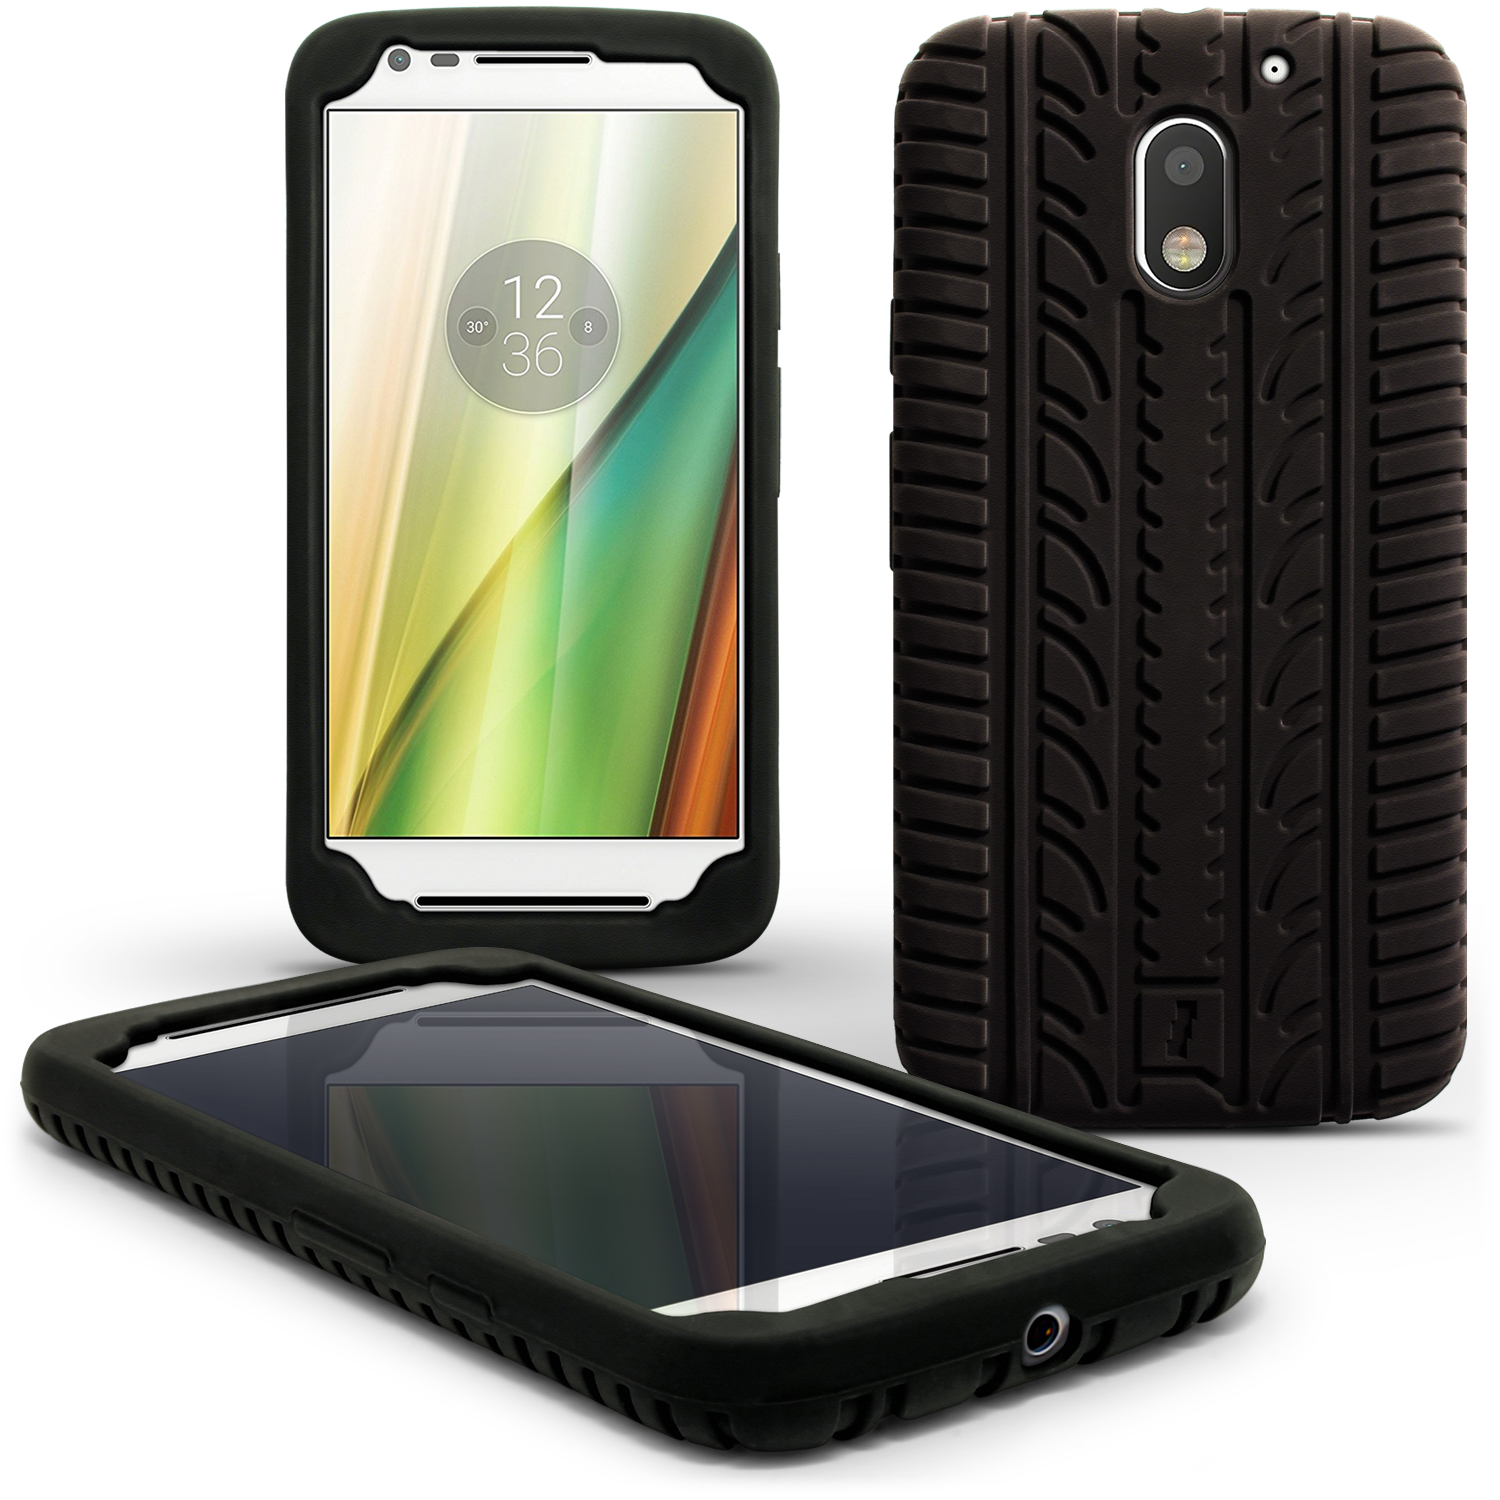 iGadgitz Black Tyre Tread Silicone Rubber Gel Skin Case Cover for Motorola Moto E 3rd Generation 2016 + Screen Protector